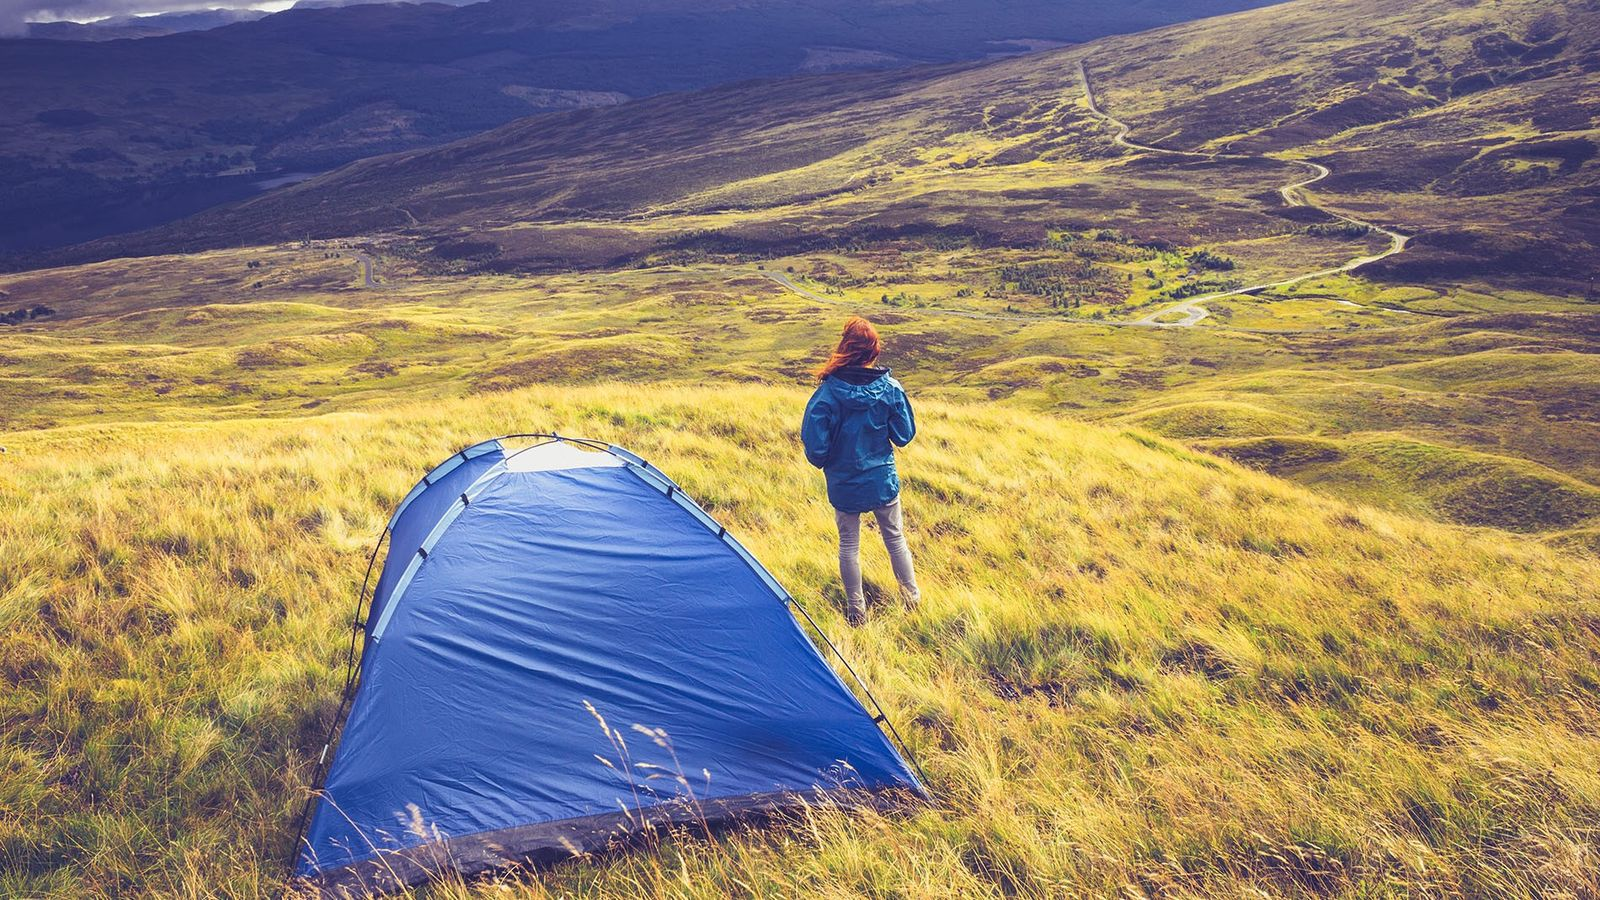 Wild camping means pitching up in an untamed, non-campsite environment.